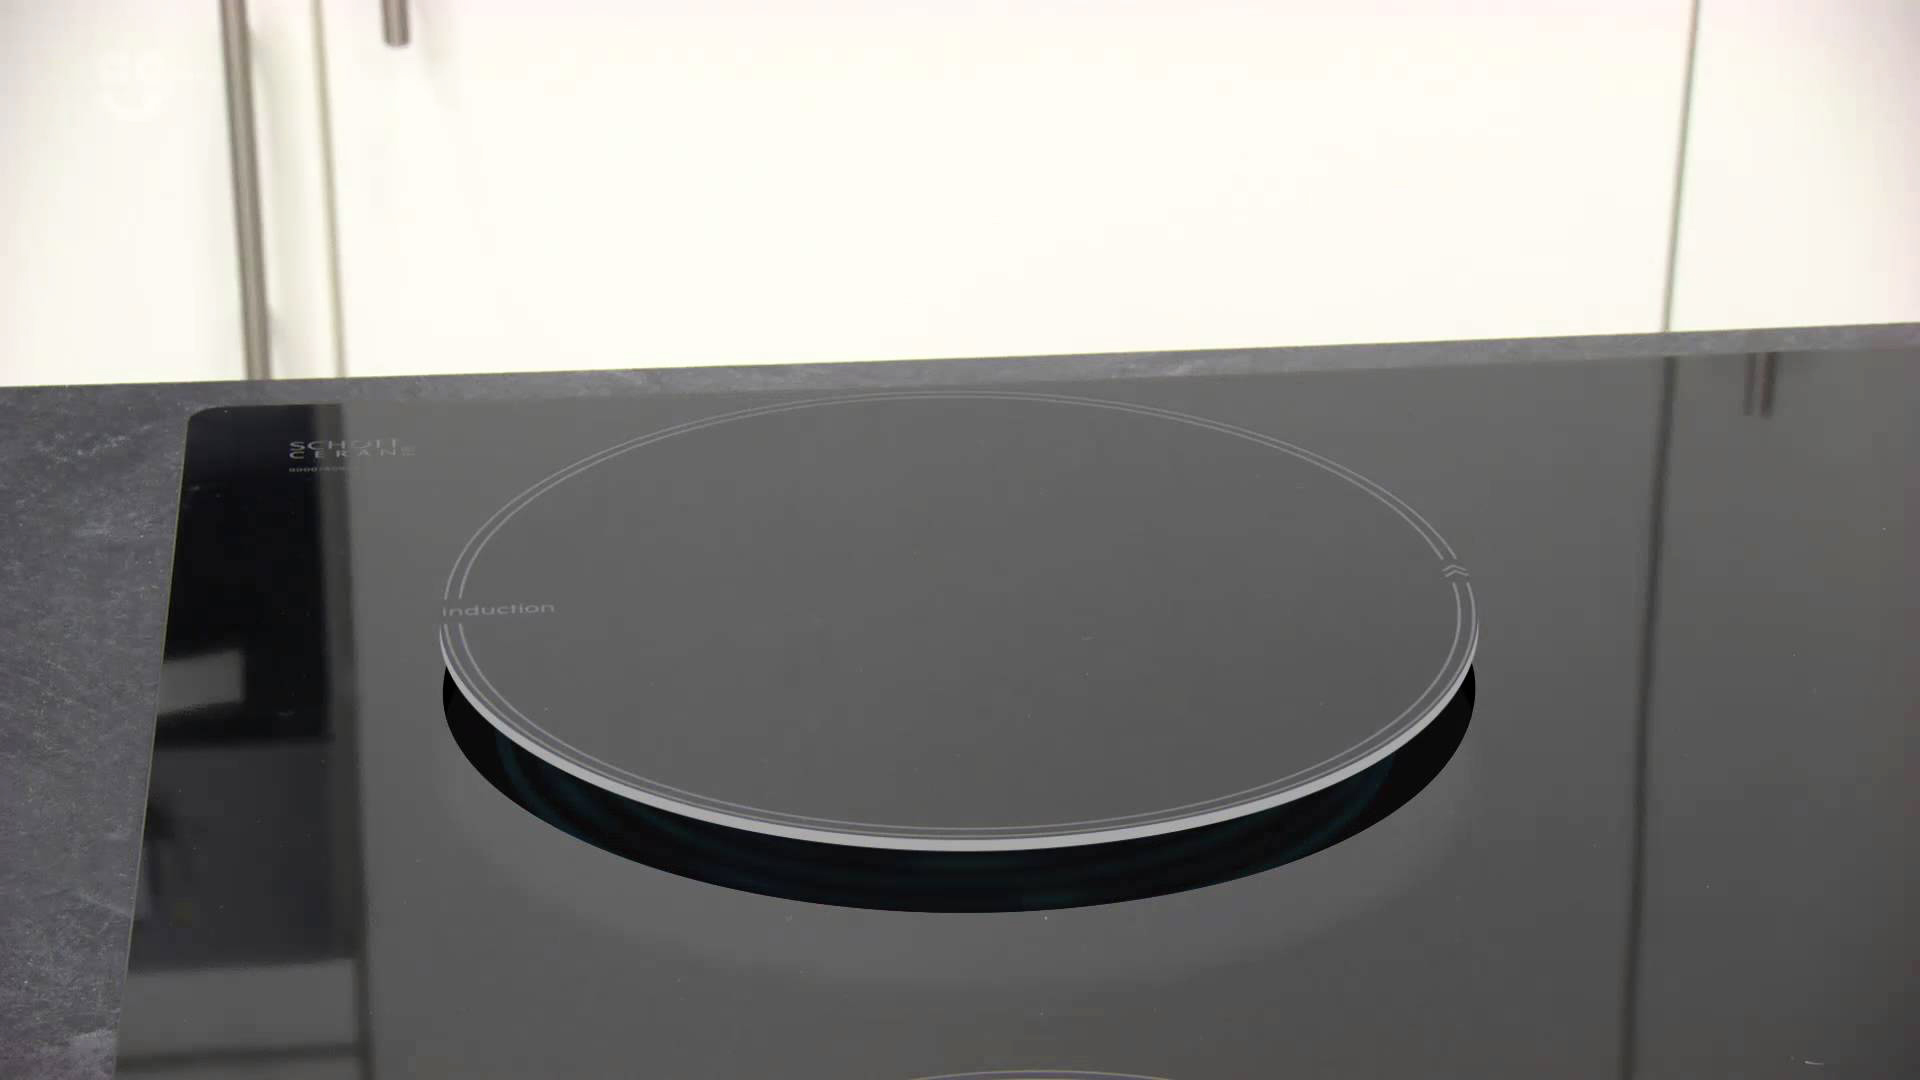 bosch induction hob how to turn on